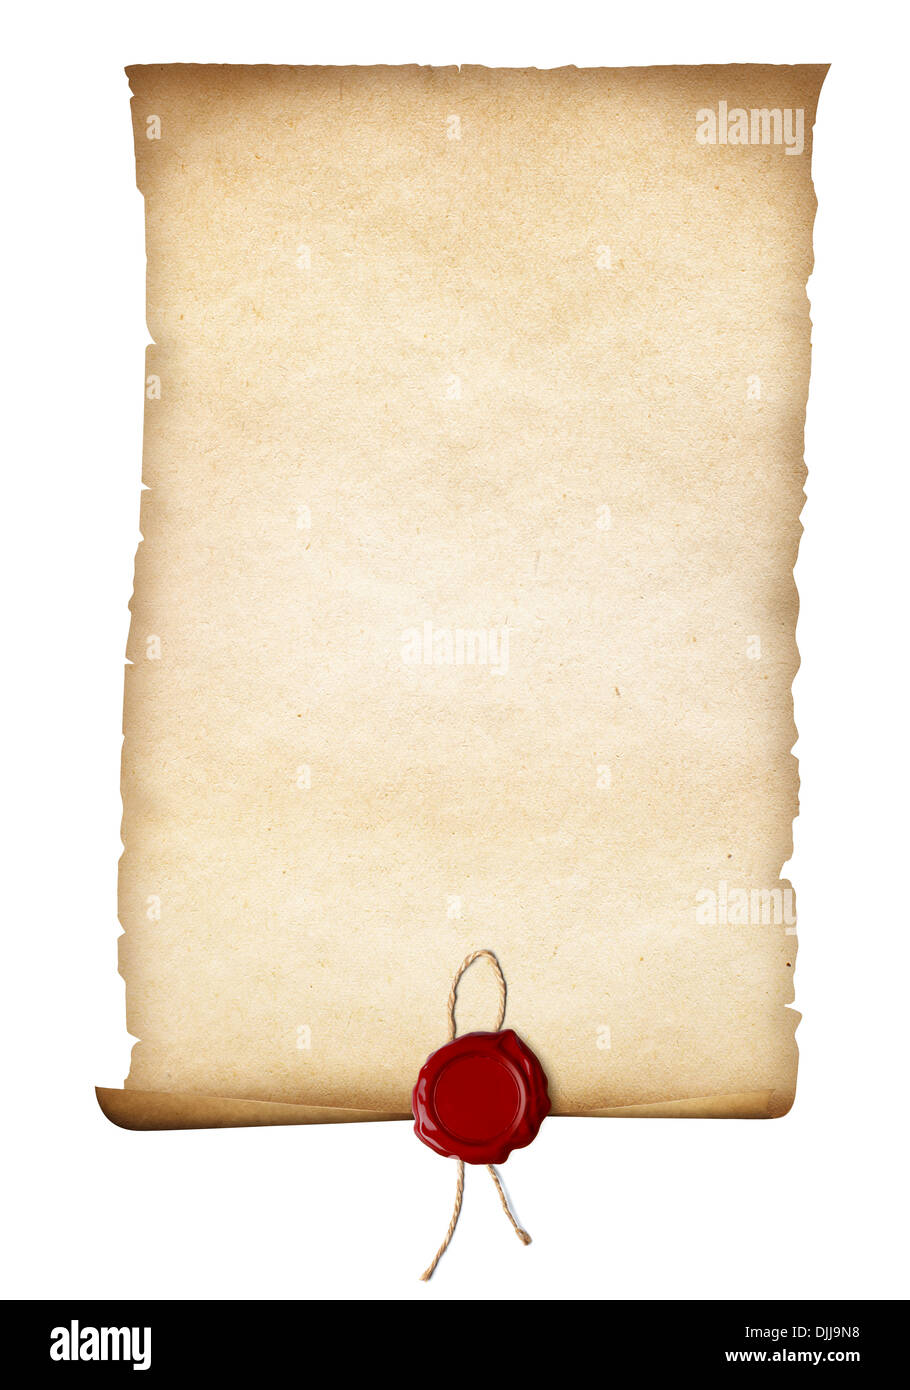 parchment or old paper with red seal isolated - Stock Image